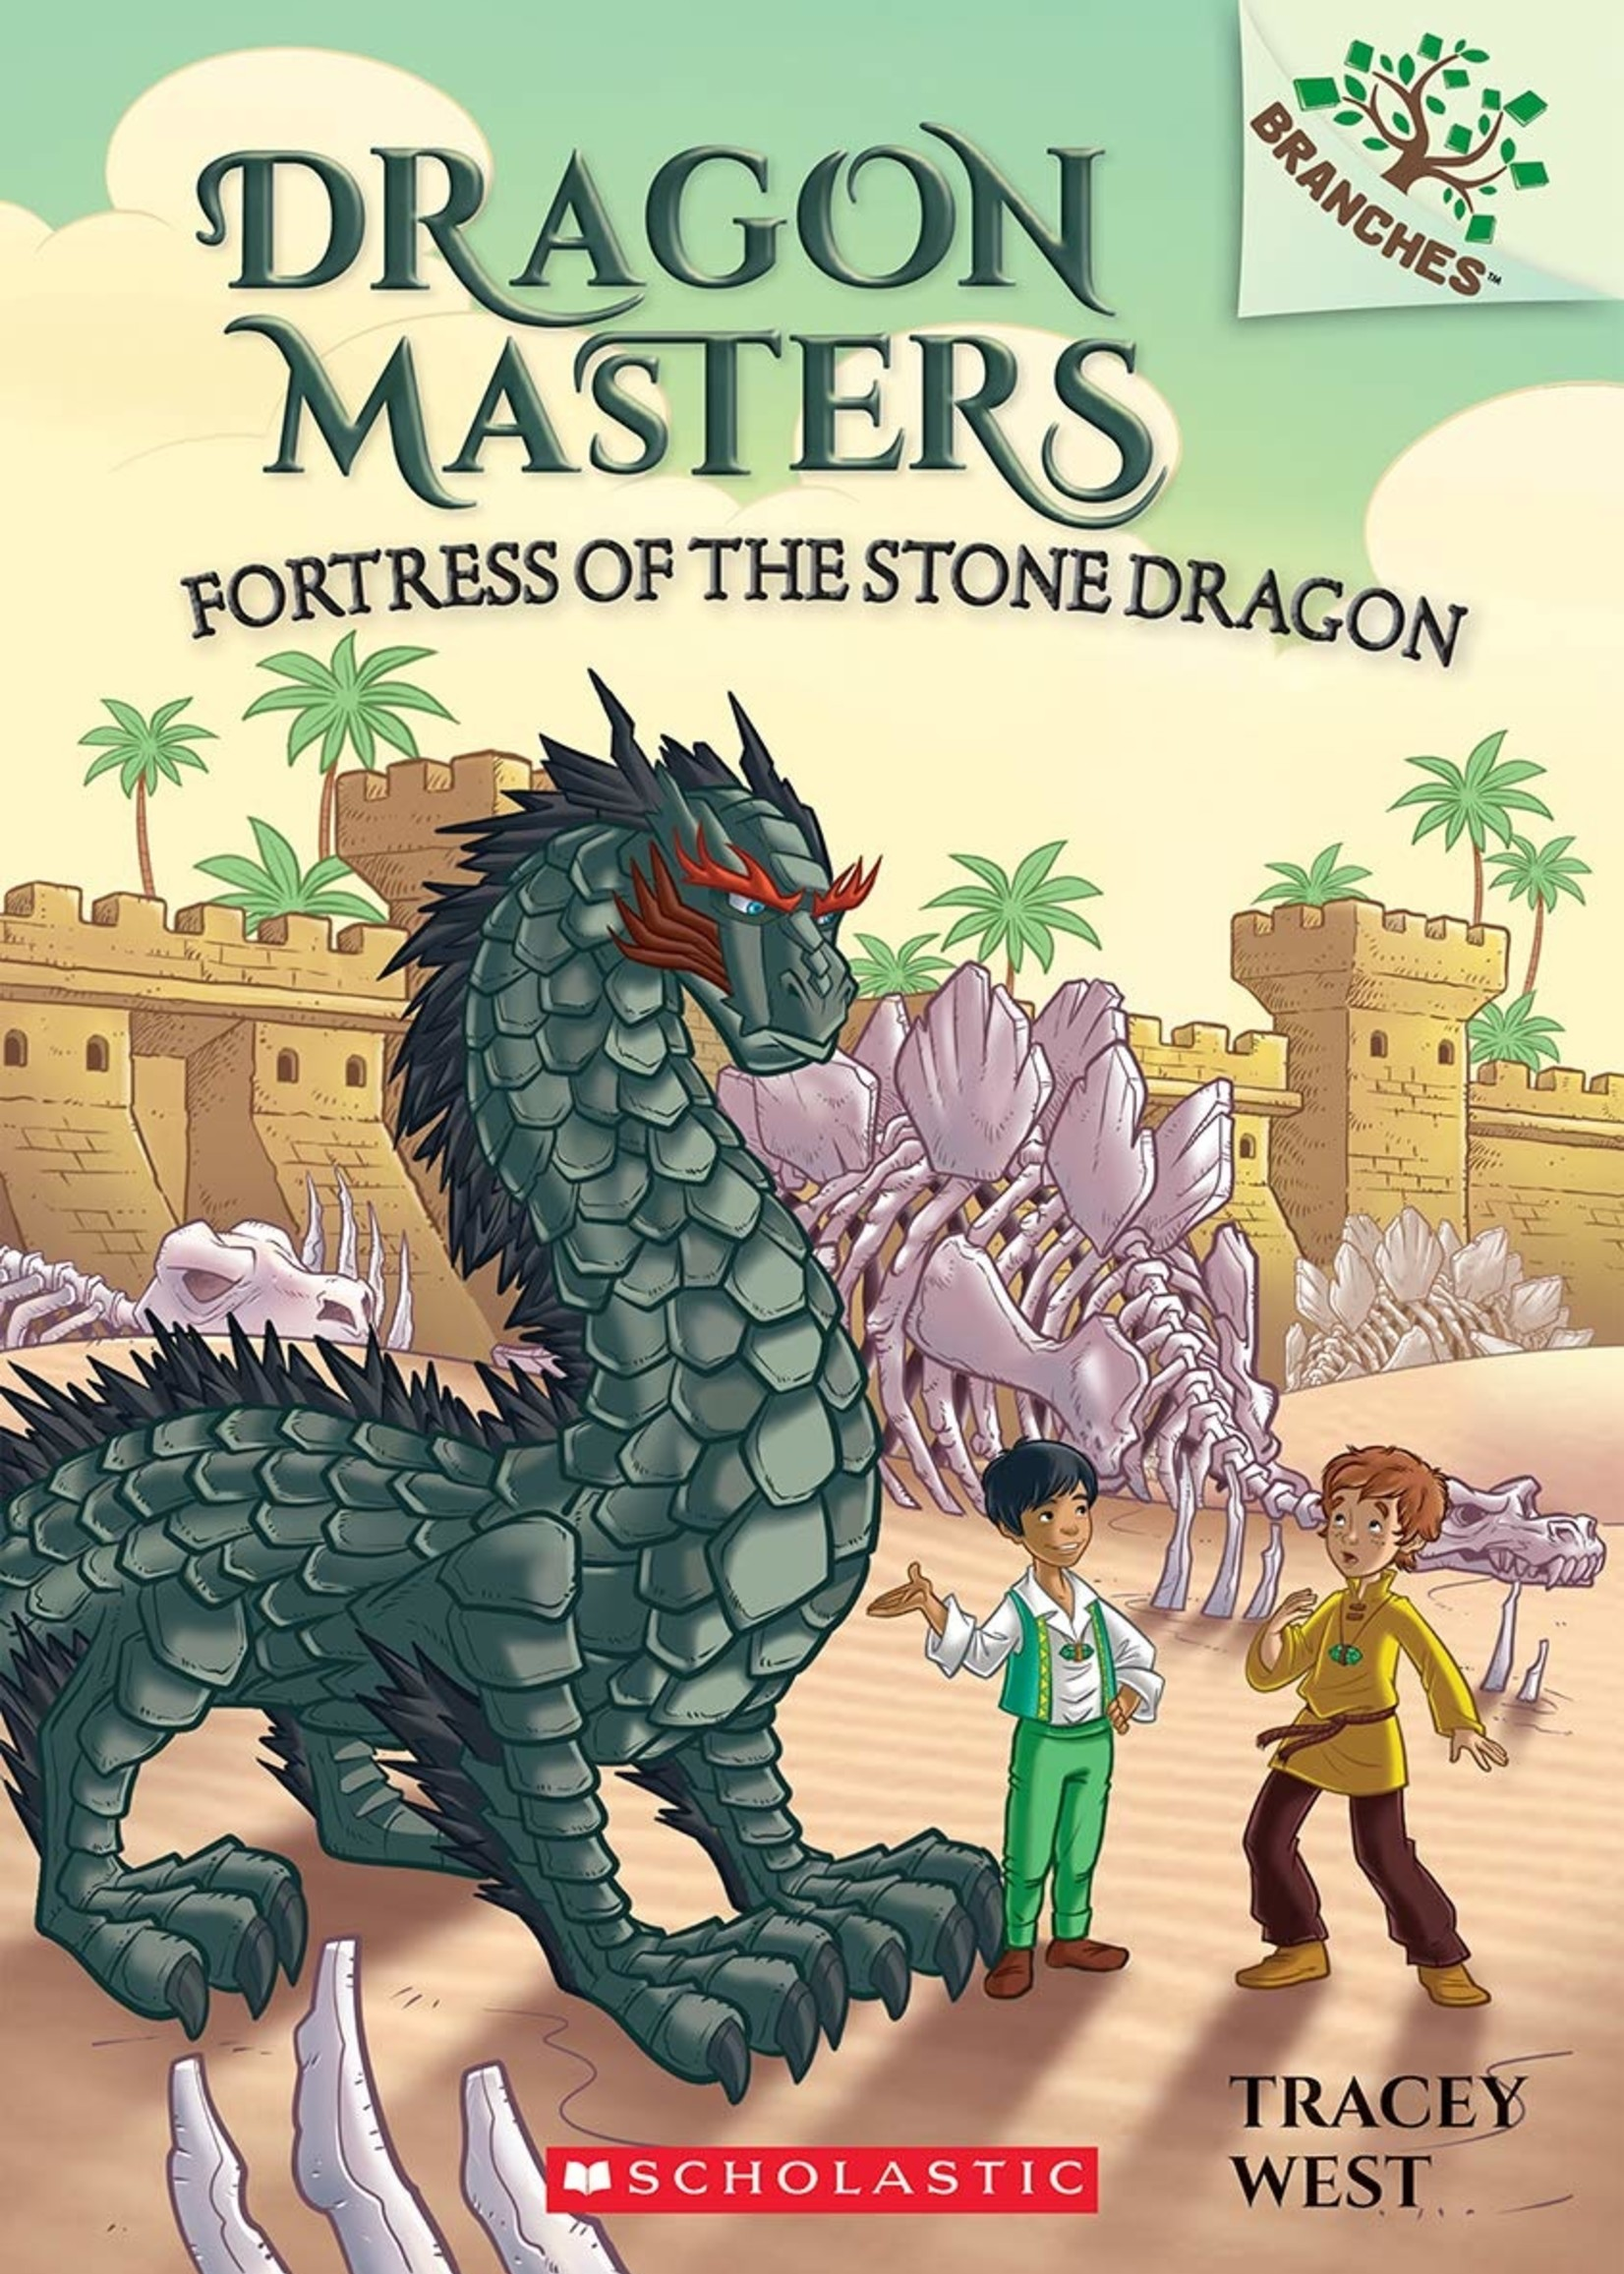 Dragon Masters #17, Fortress of the Stone Dragon - Paperback